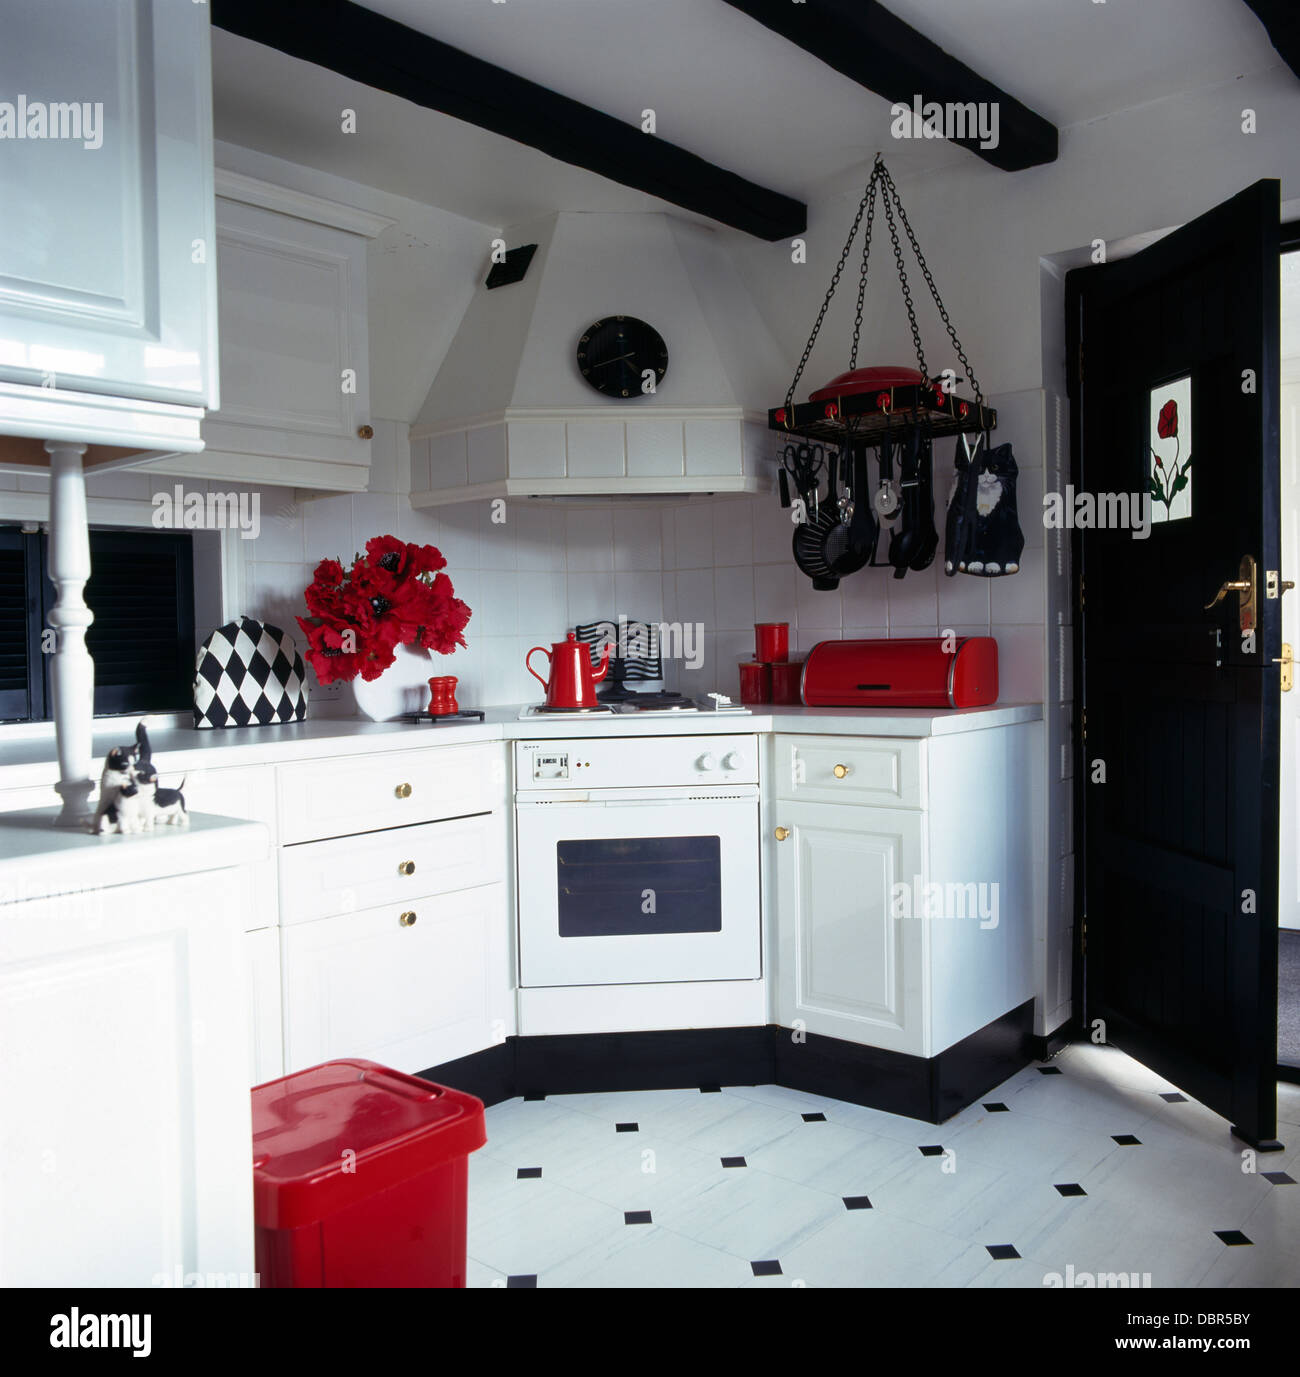 Red Accessories In Black And White Kitchen With Black White Vinyl